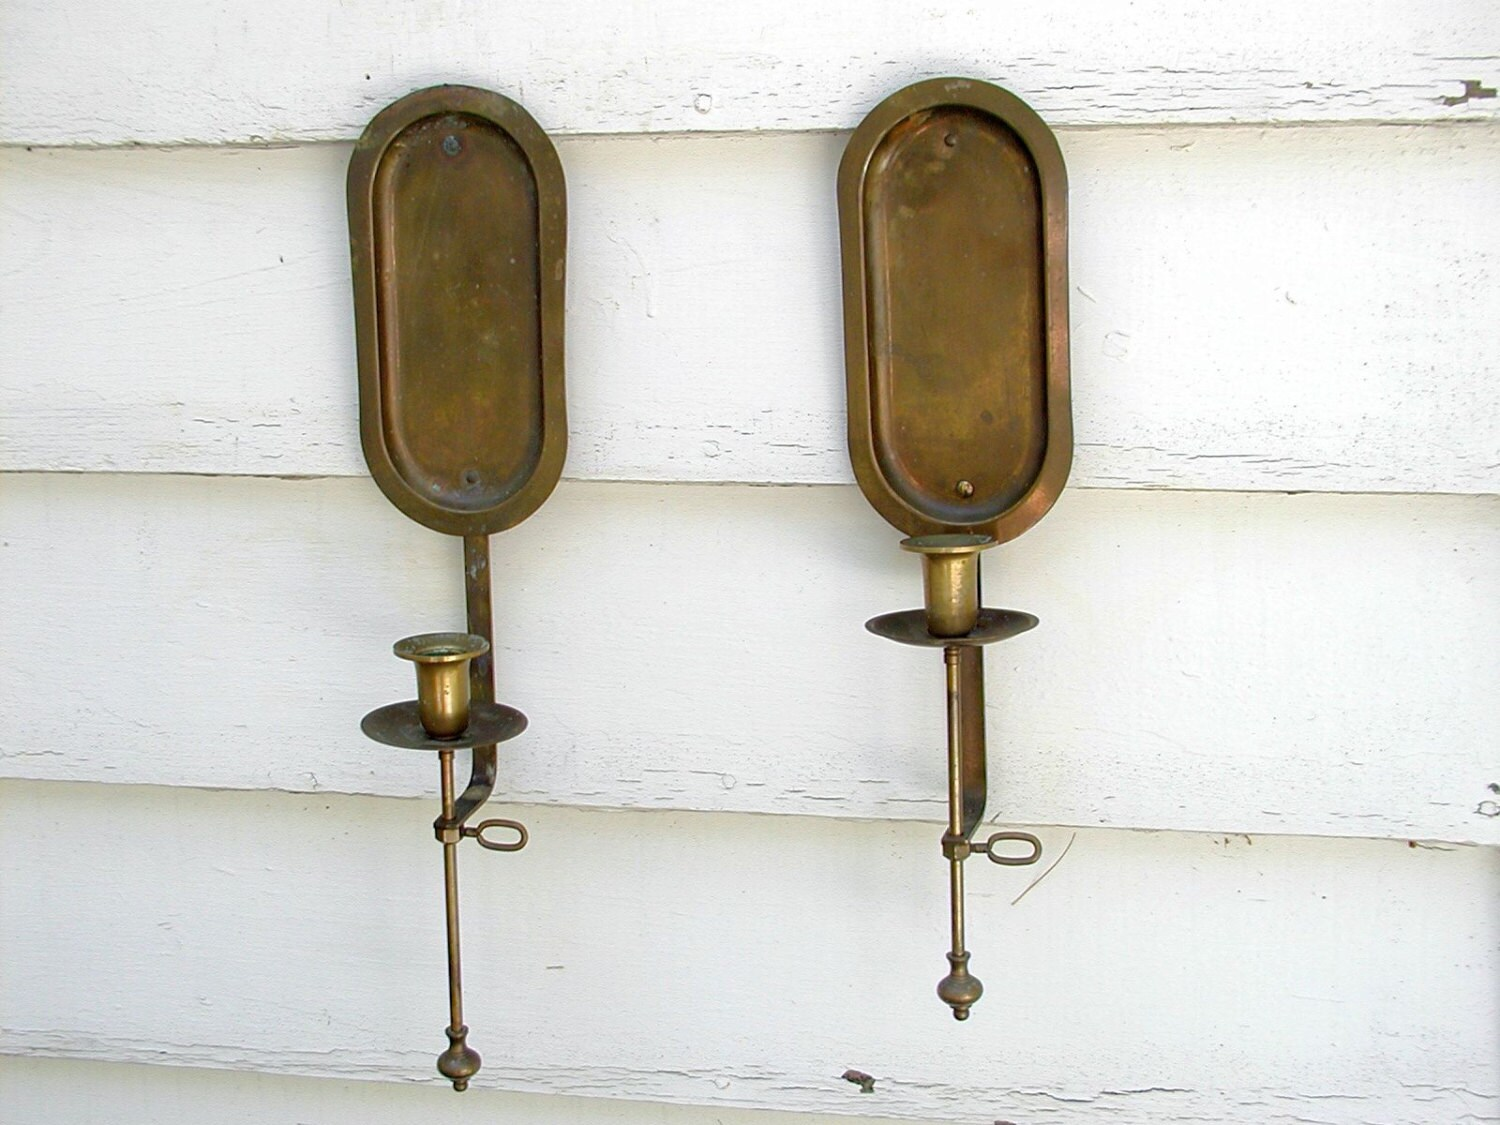 Pair Vintage Brass Wall Sconces Candle Holders by Idugitup on Etsy